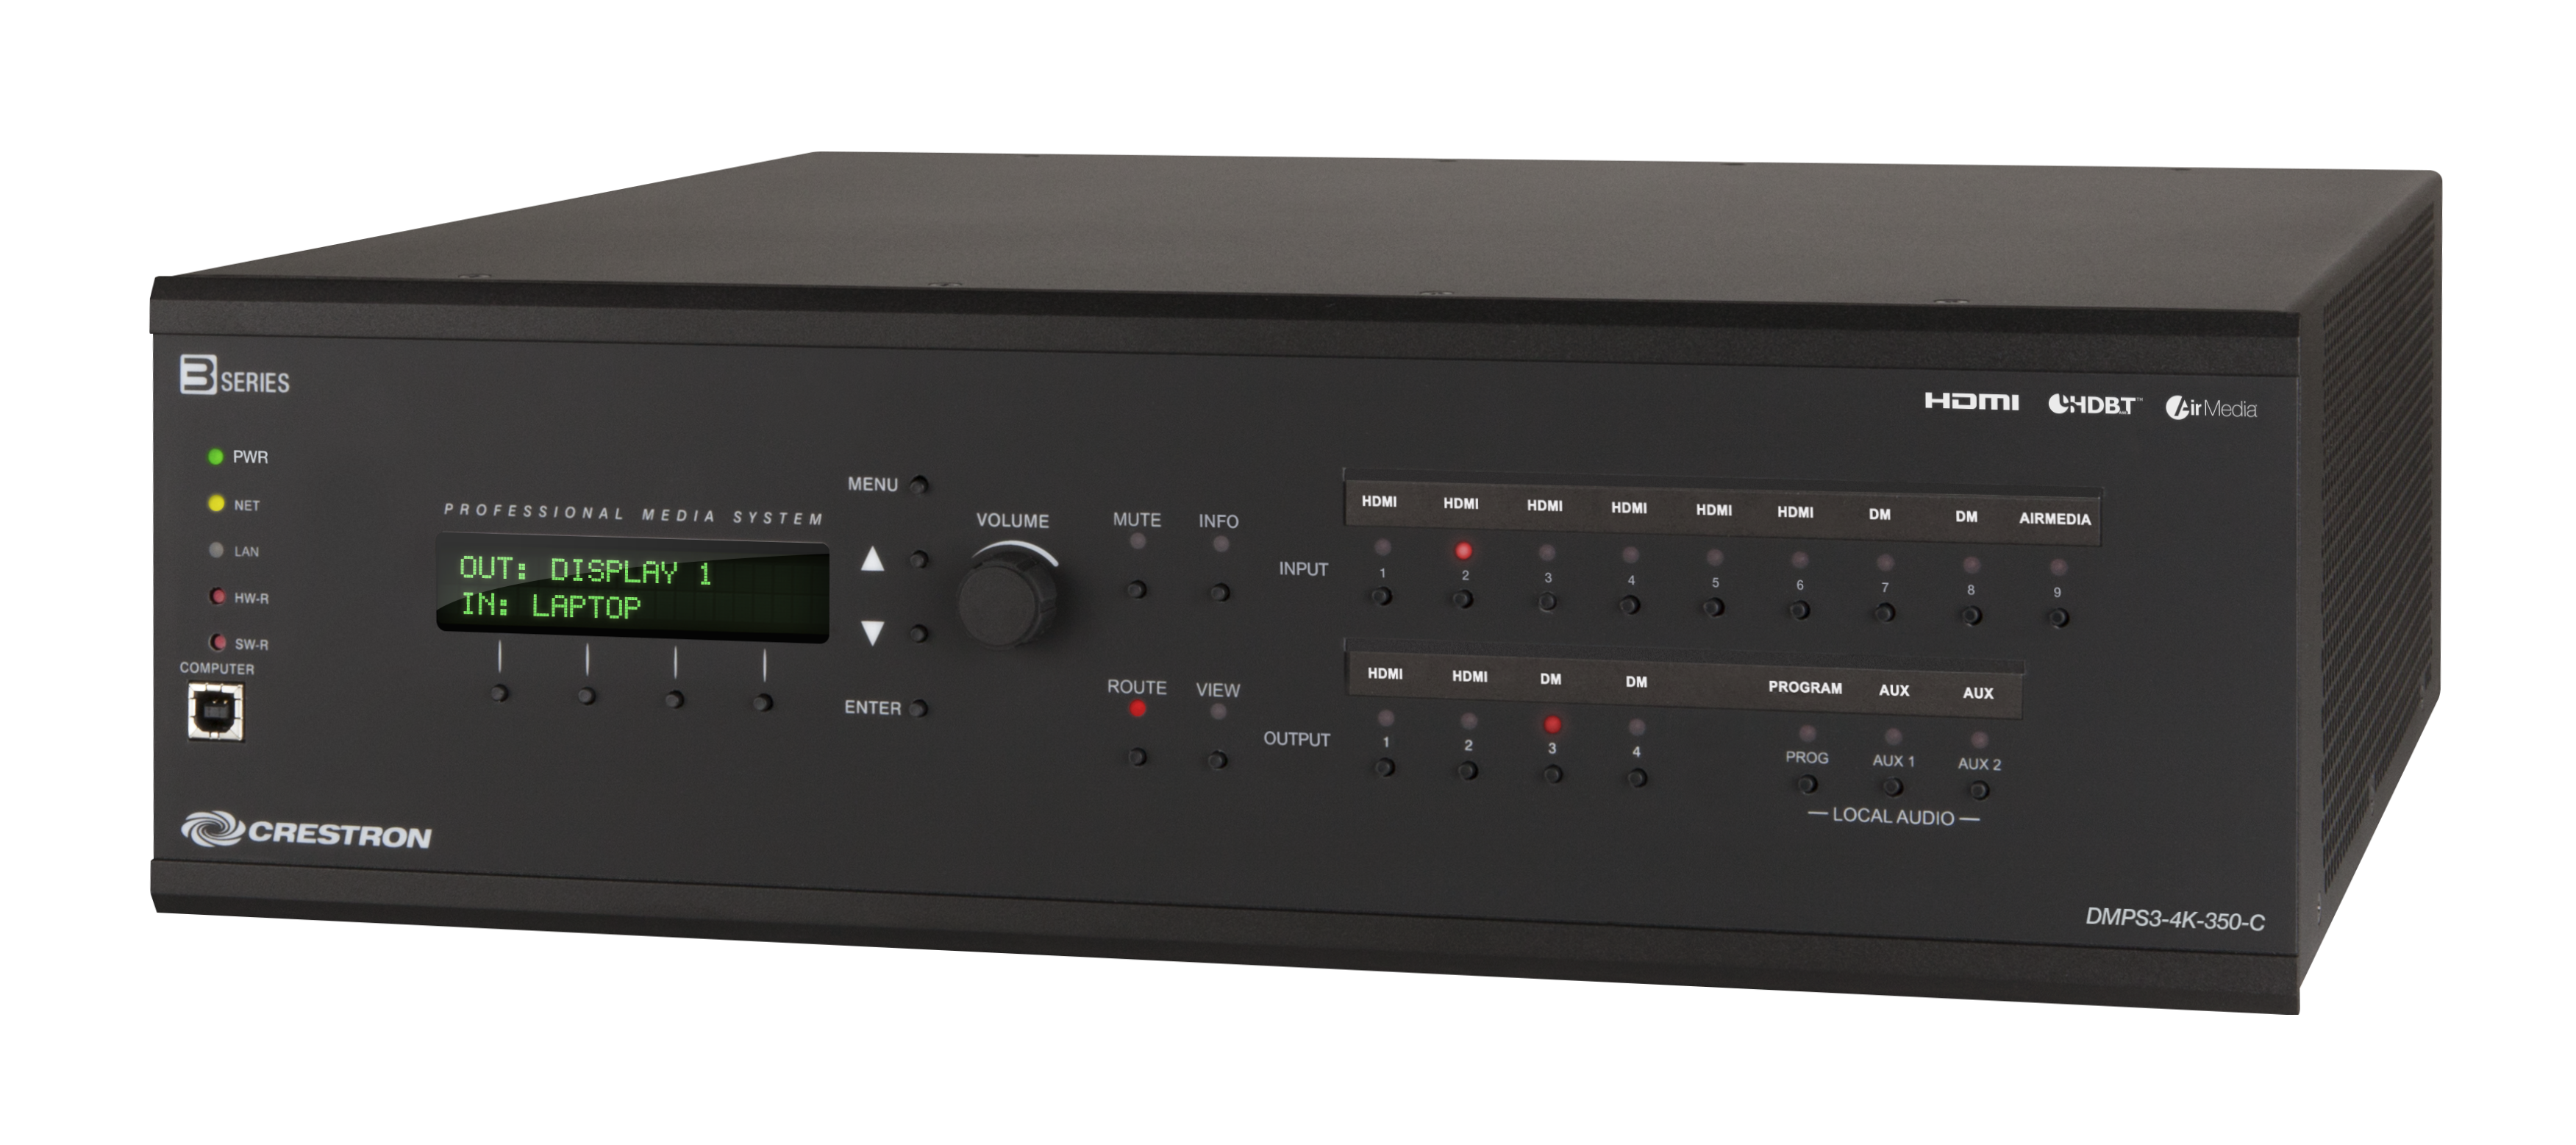 Crestron DMPS3-4K-350-C Digital Media System